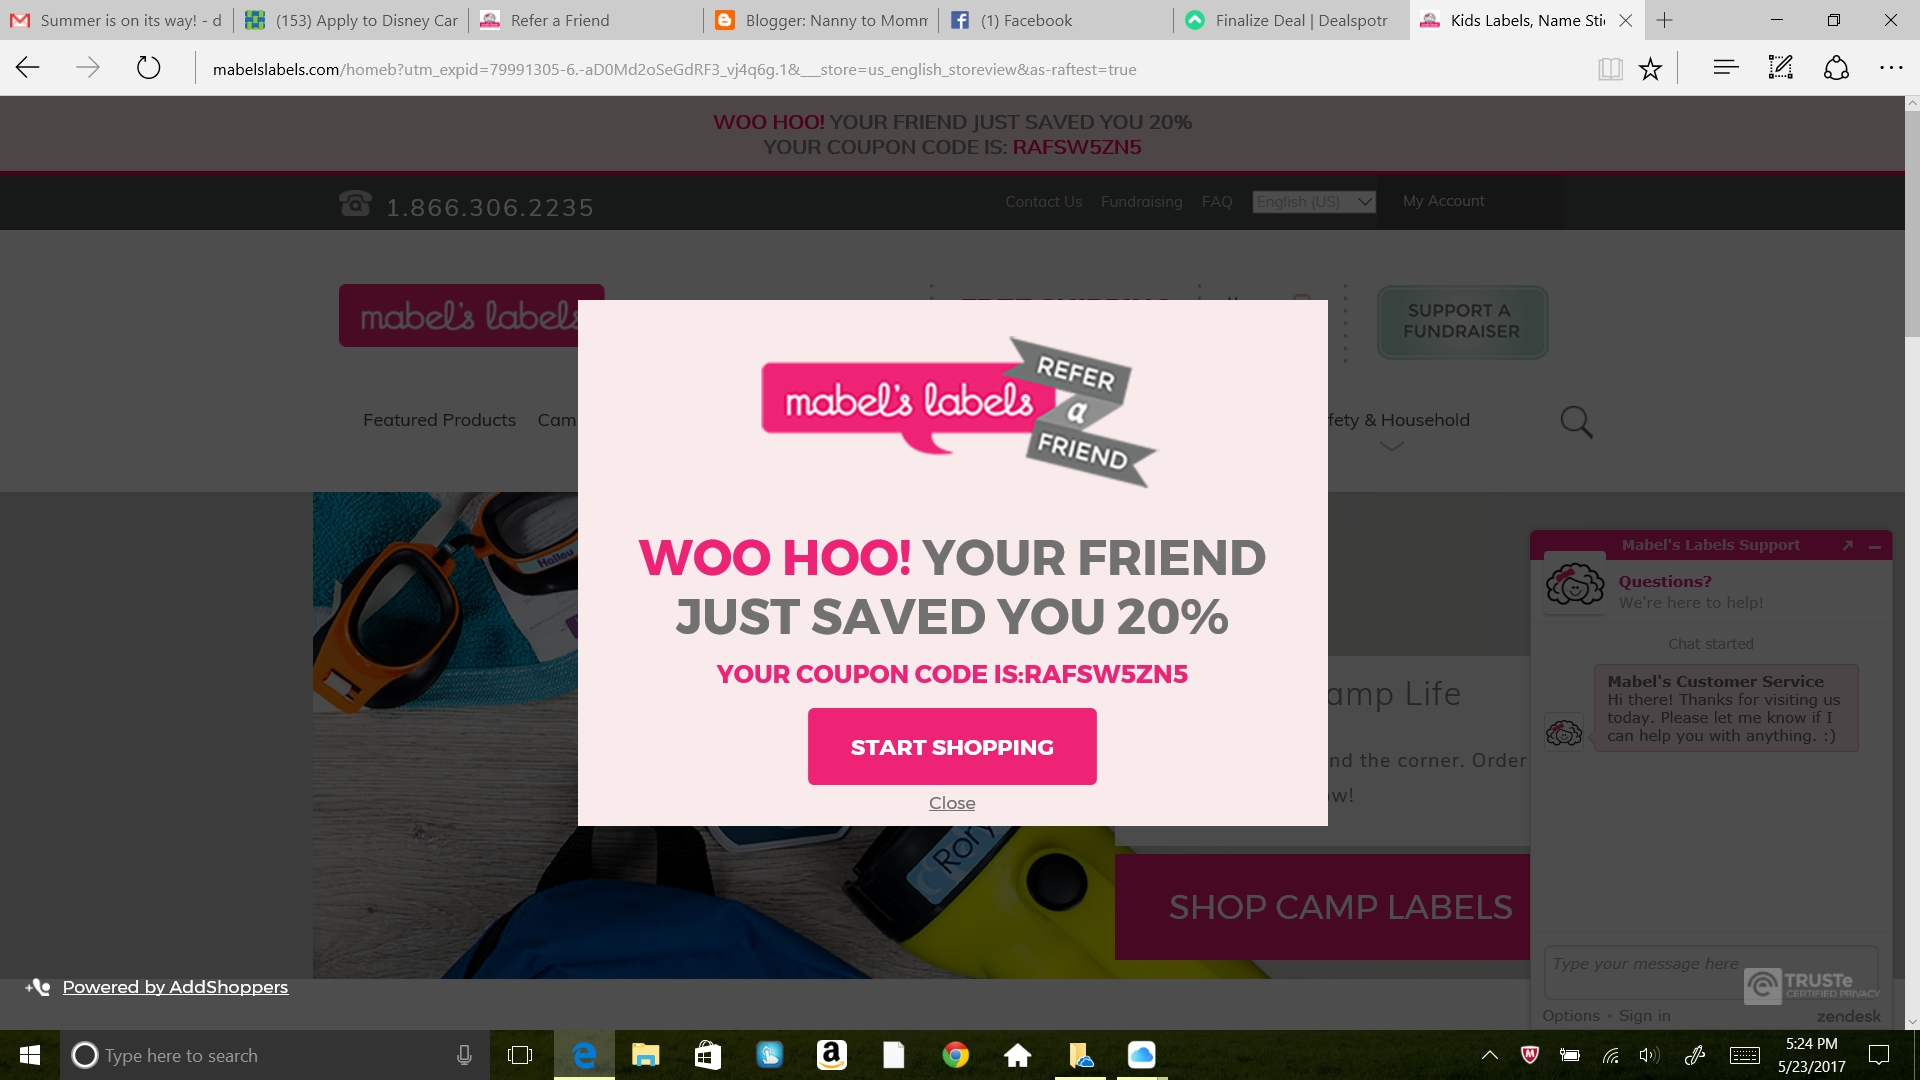 Mabel's Labels Coupons, Sales & Promo Codes. For Mabel's Labels coupon codes and deals, just follow this link to the website to browse their current offerings. And while you're there, sign up for emails to get alerts about discounts and more, right in your inbox. .